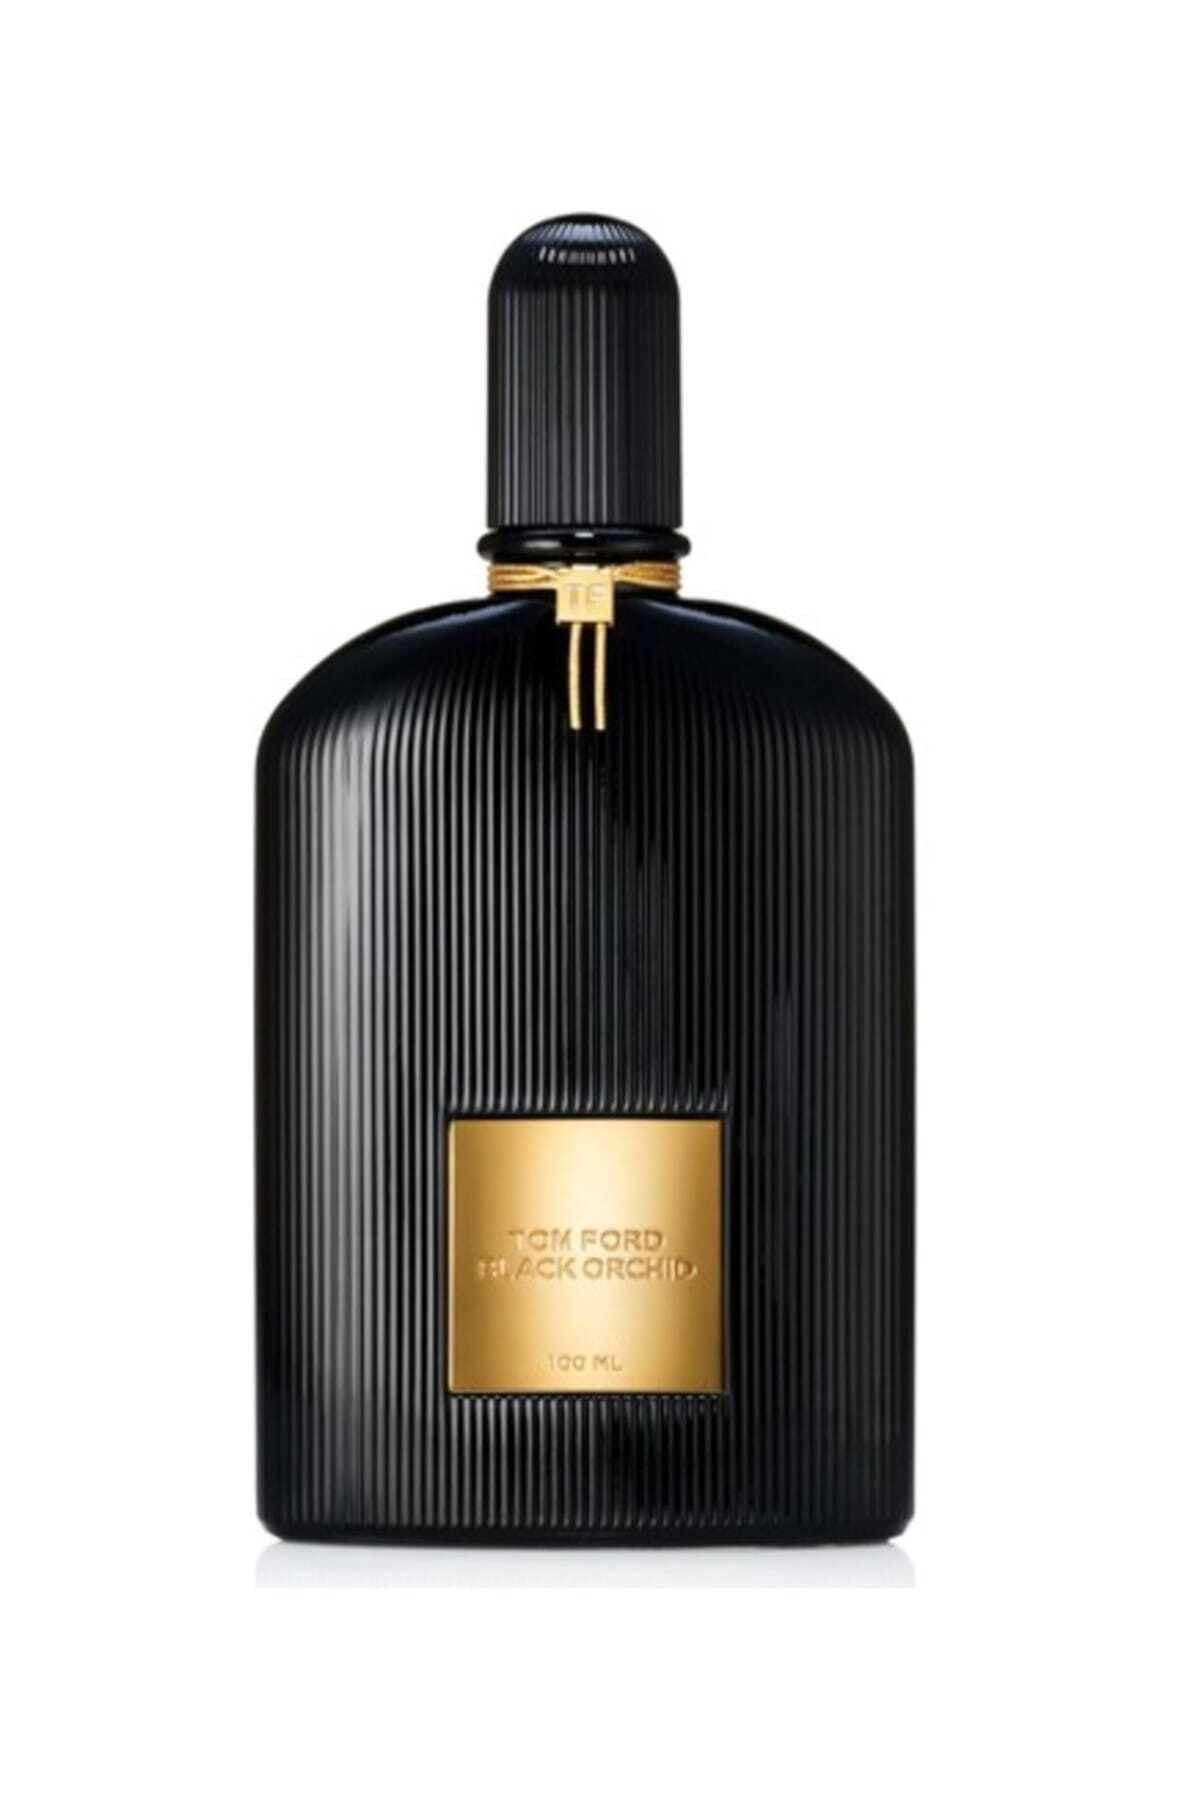 Tom Ford Black Orchid Edp 100 ml Erkek Parfüm 0002089203757 1